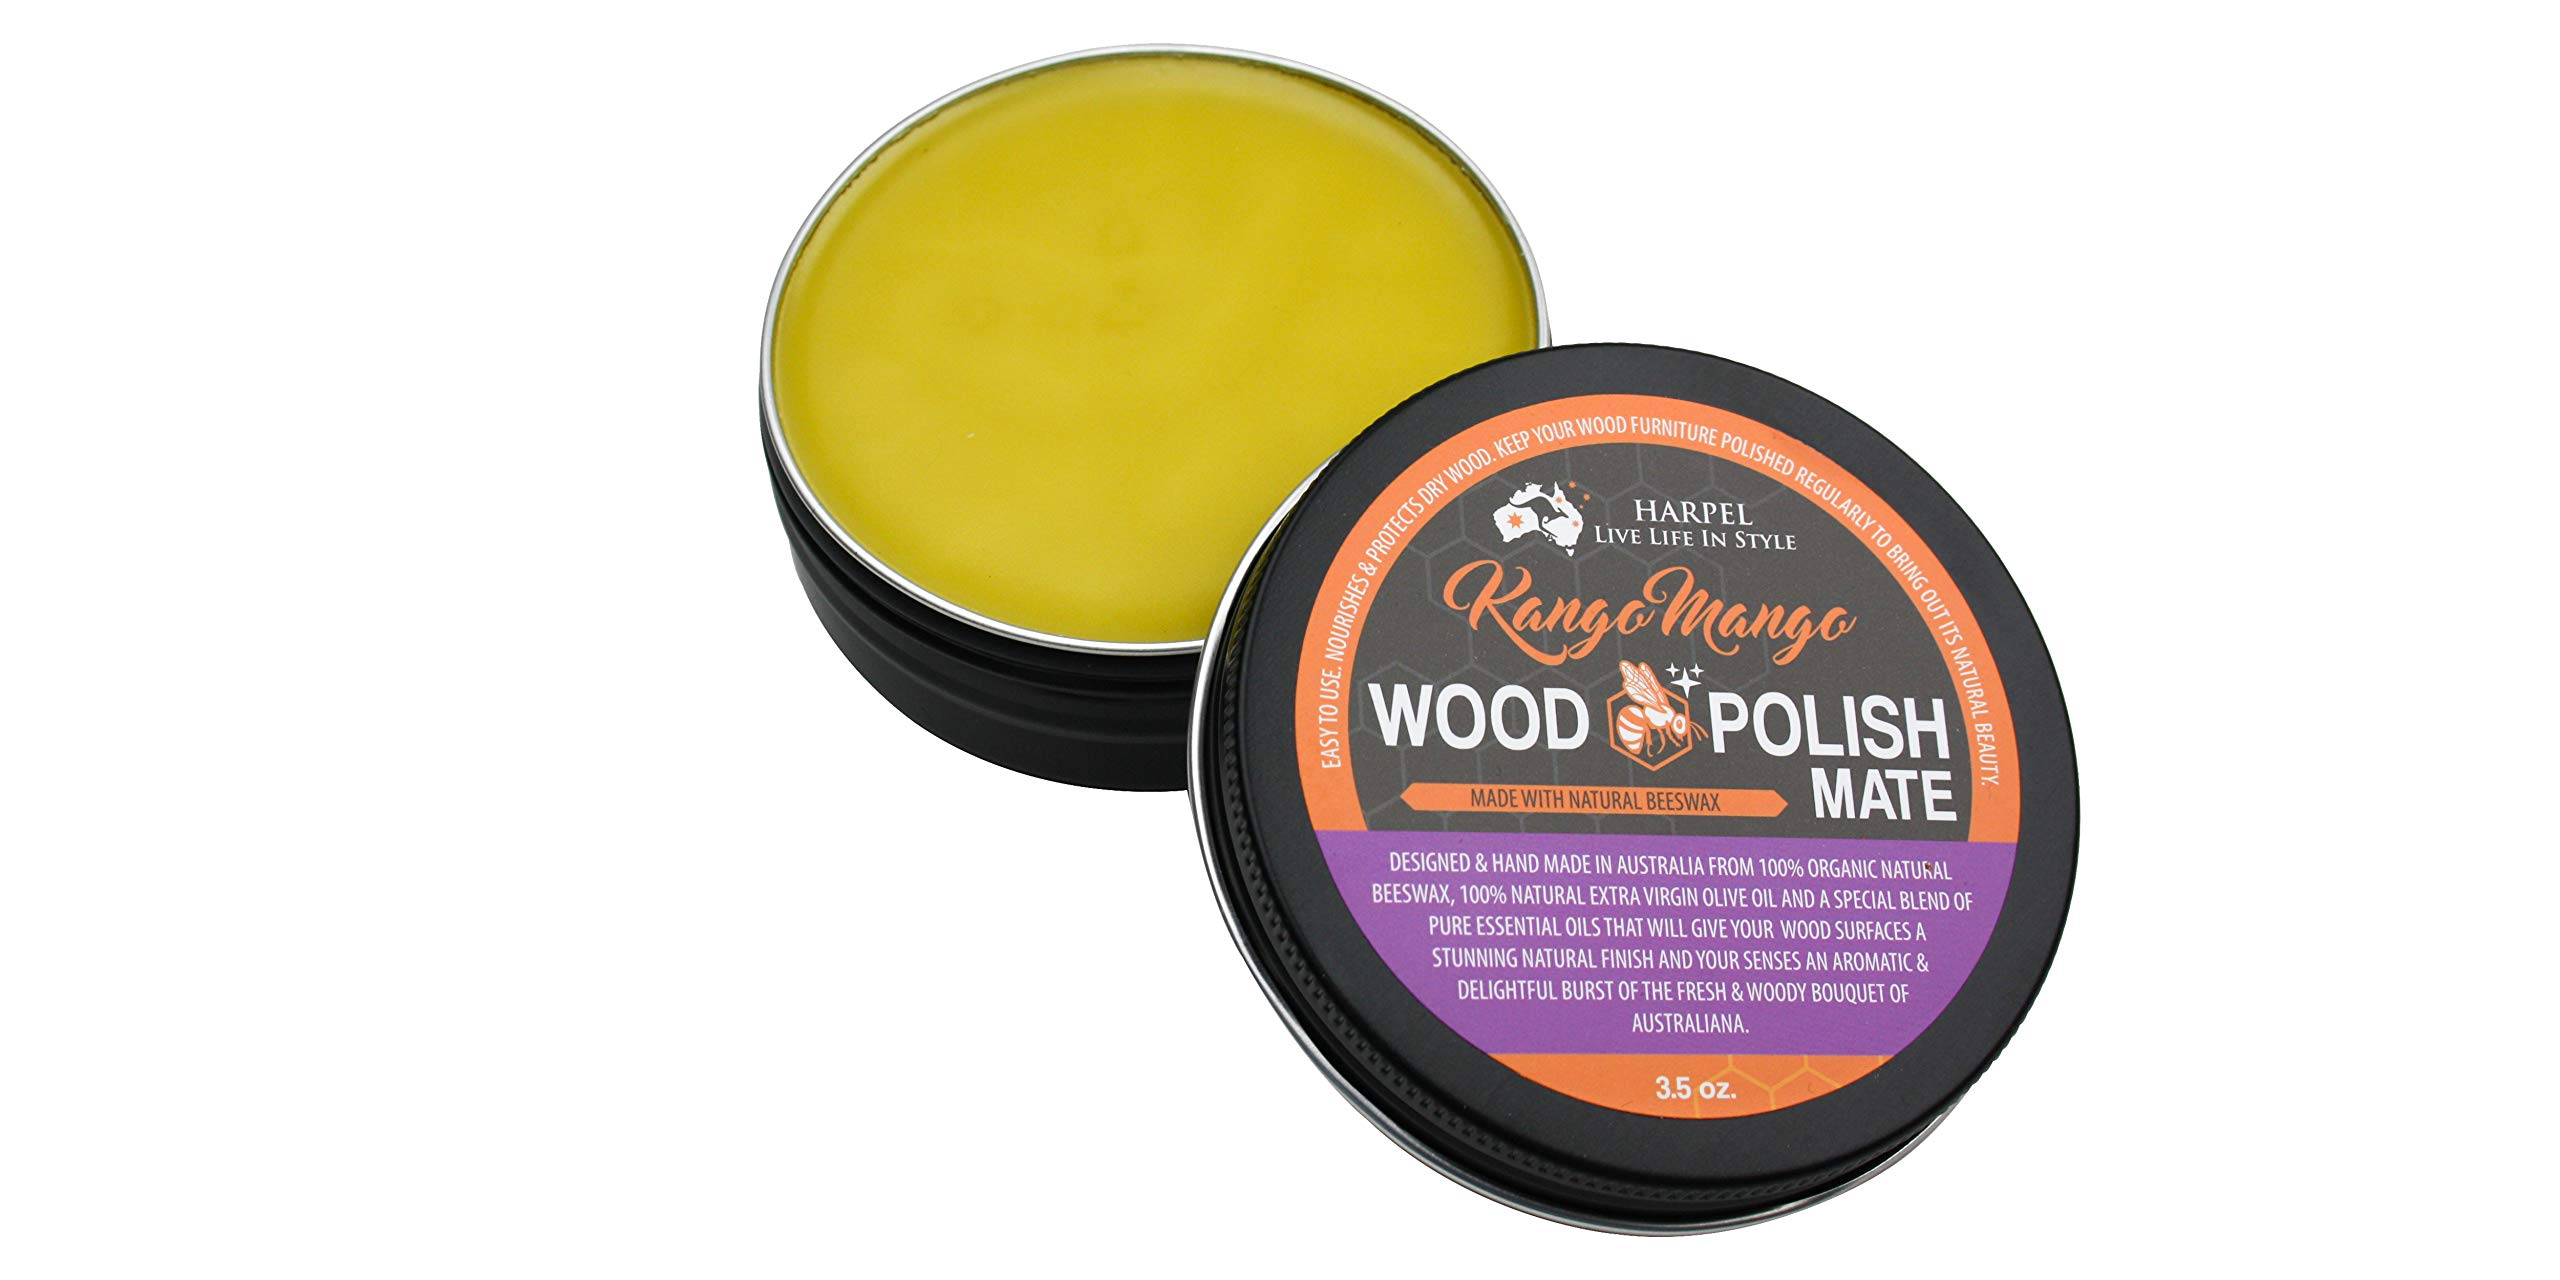 Kango Mango Wood Polish-Mate, Traditional Furniture, Natural Wood Polish with Beeswax. Nourishes, Protects Dry Wood. All Australian, Free from Petroleum, Chemicals & toxins. for All Wood Types 3.5oz